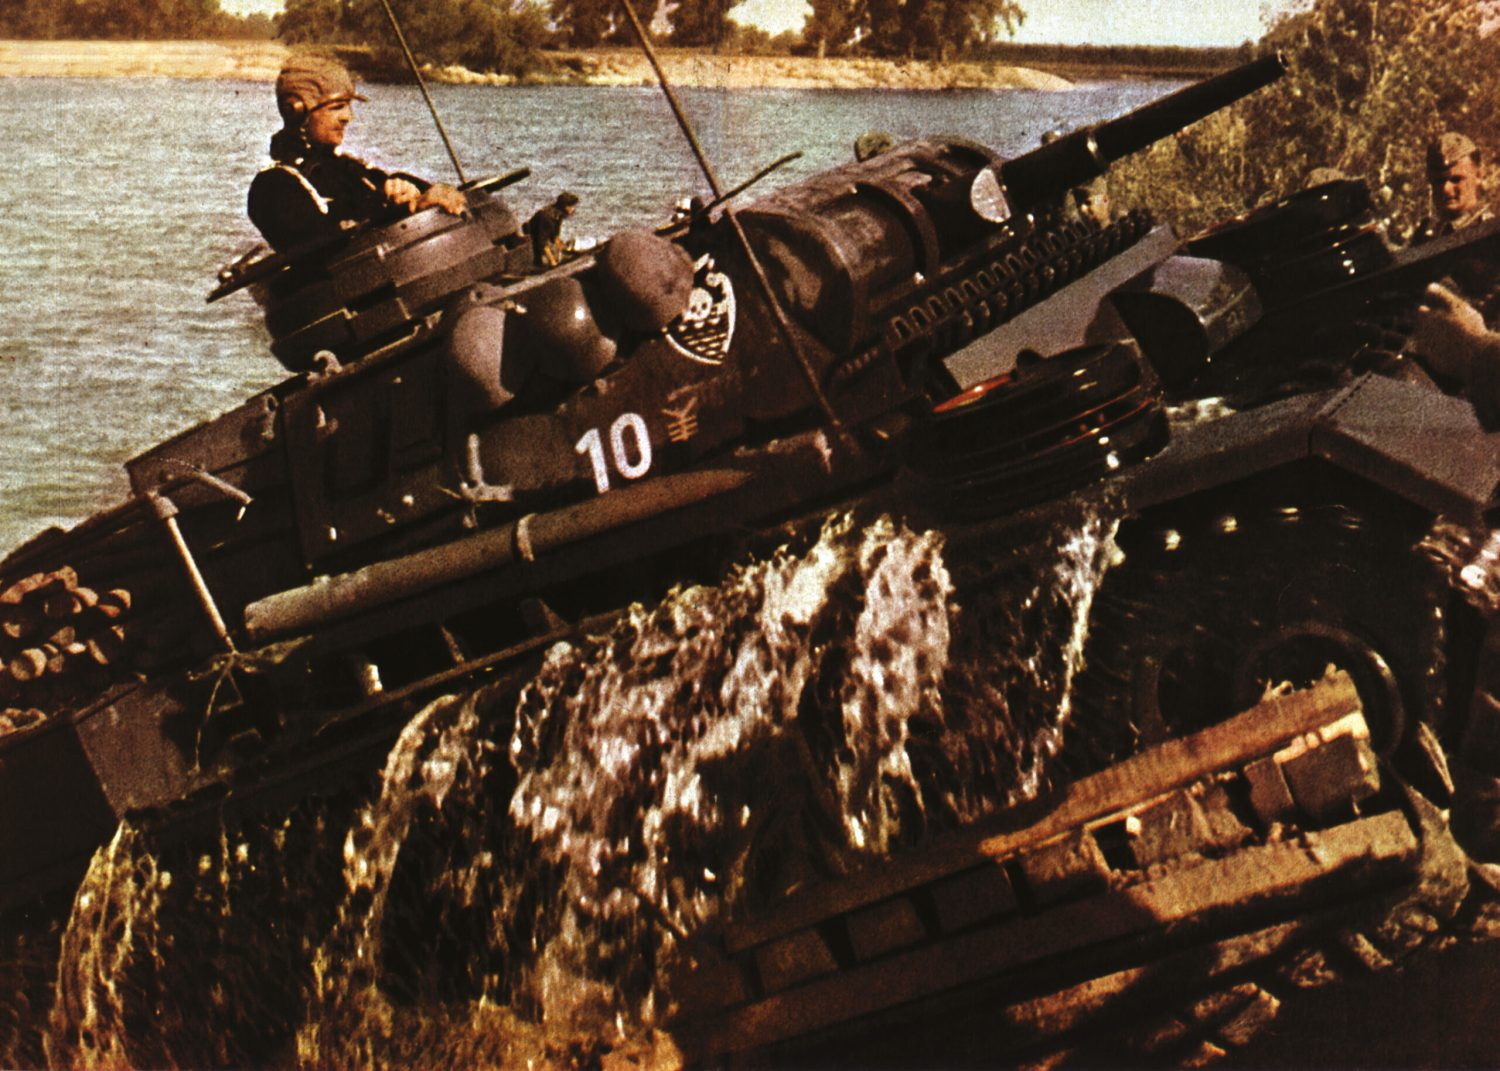 OPPOSITE A Panzer III fords a river during Operation Barbarossa in the summer of 1941 one of the 3,000 Axis tanks forming the armour component of the greatest military invasion in history.